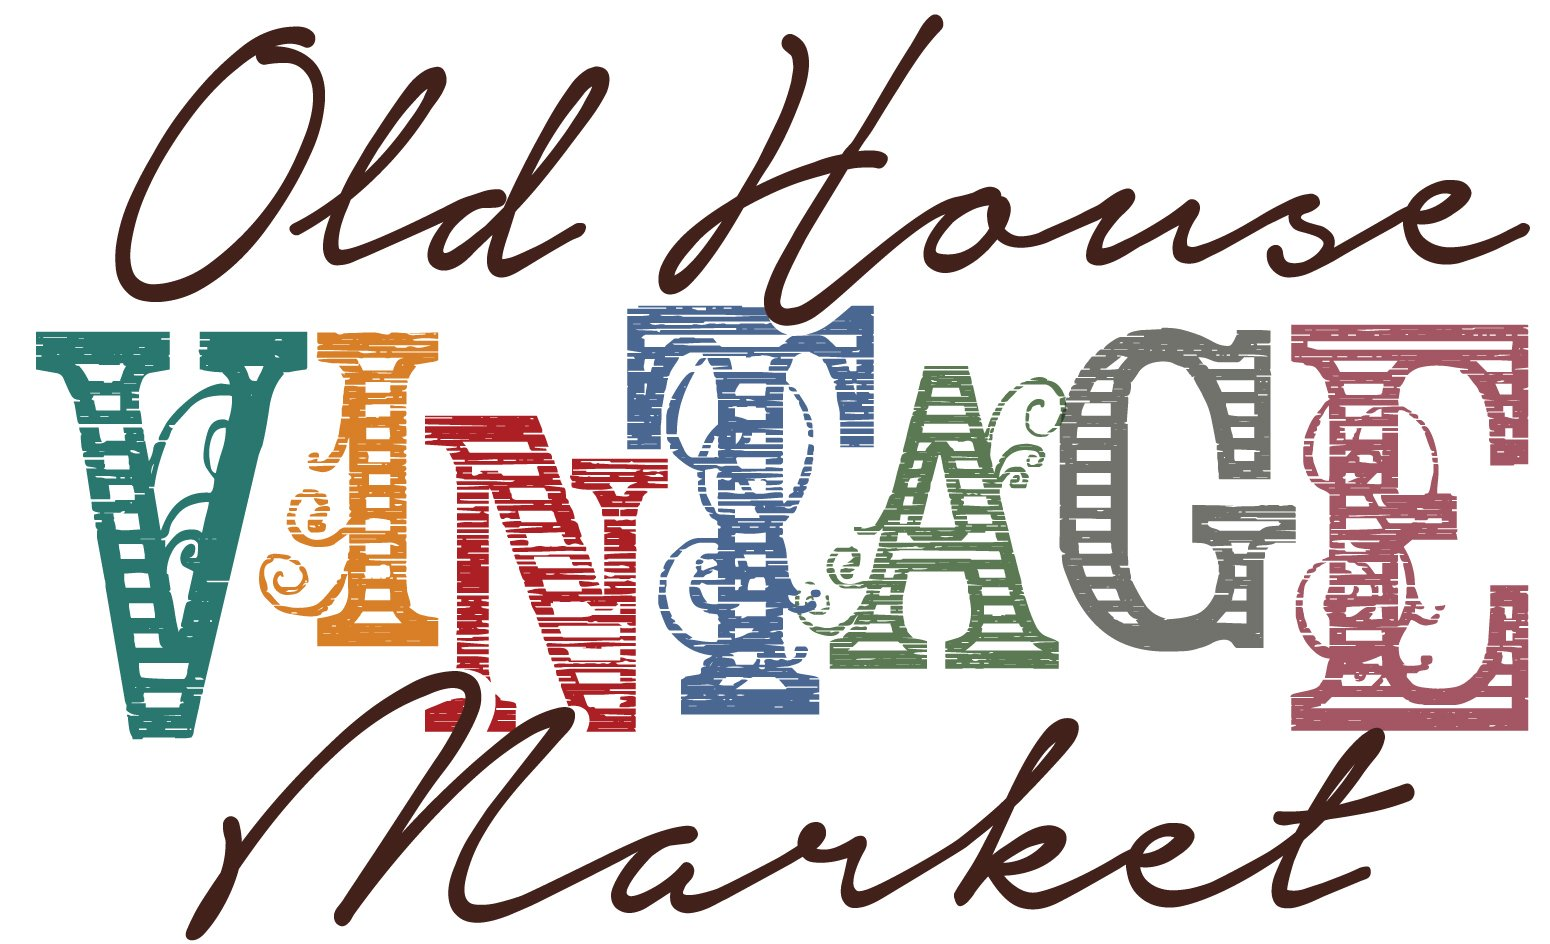 Upcoming Markets The Old House Vintage Market